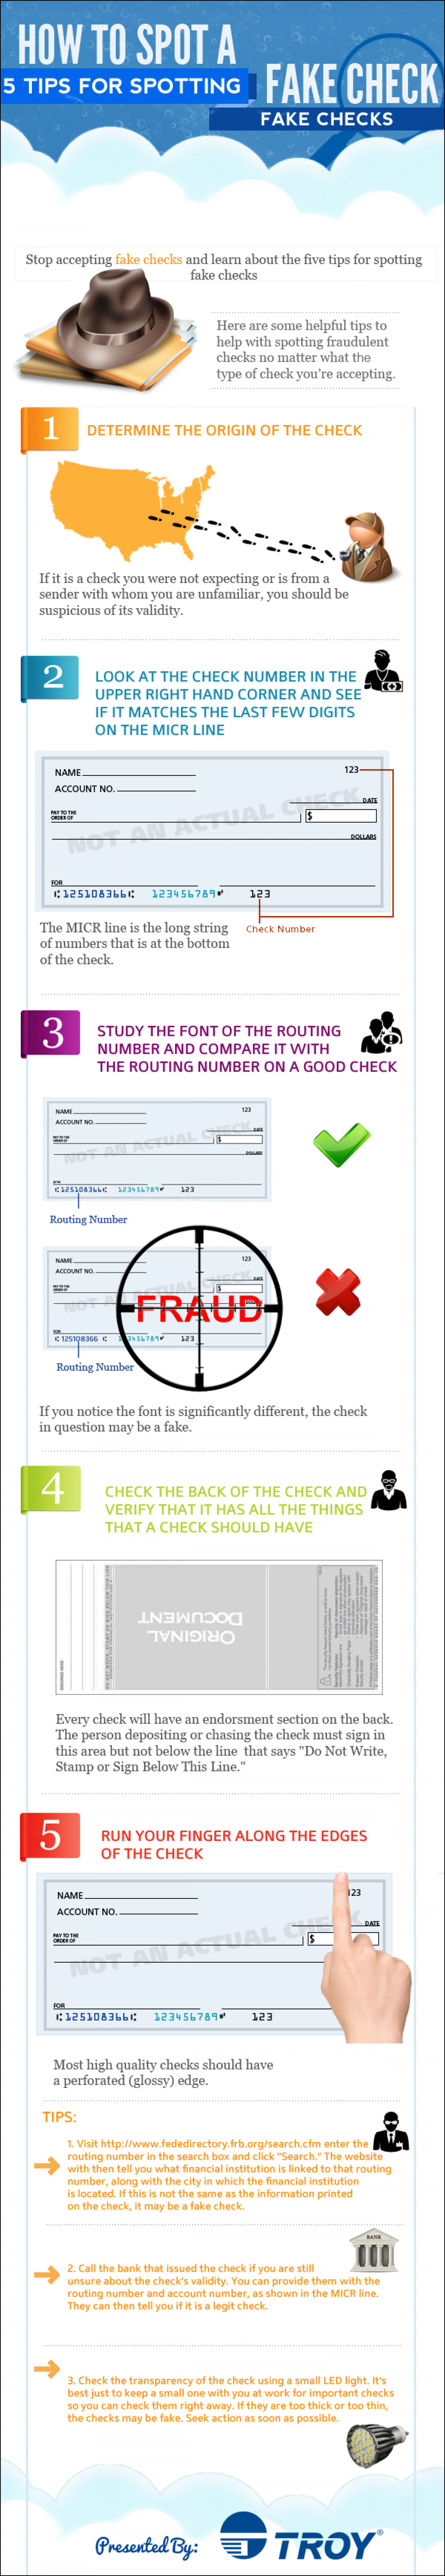 How to Spot a Fake Check Infographic